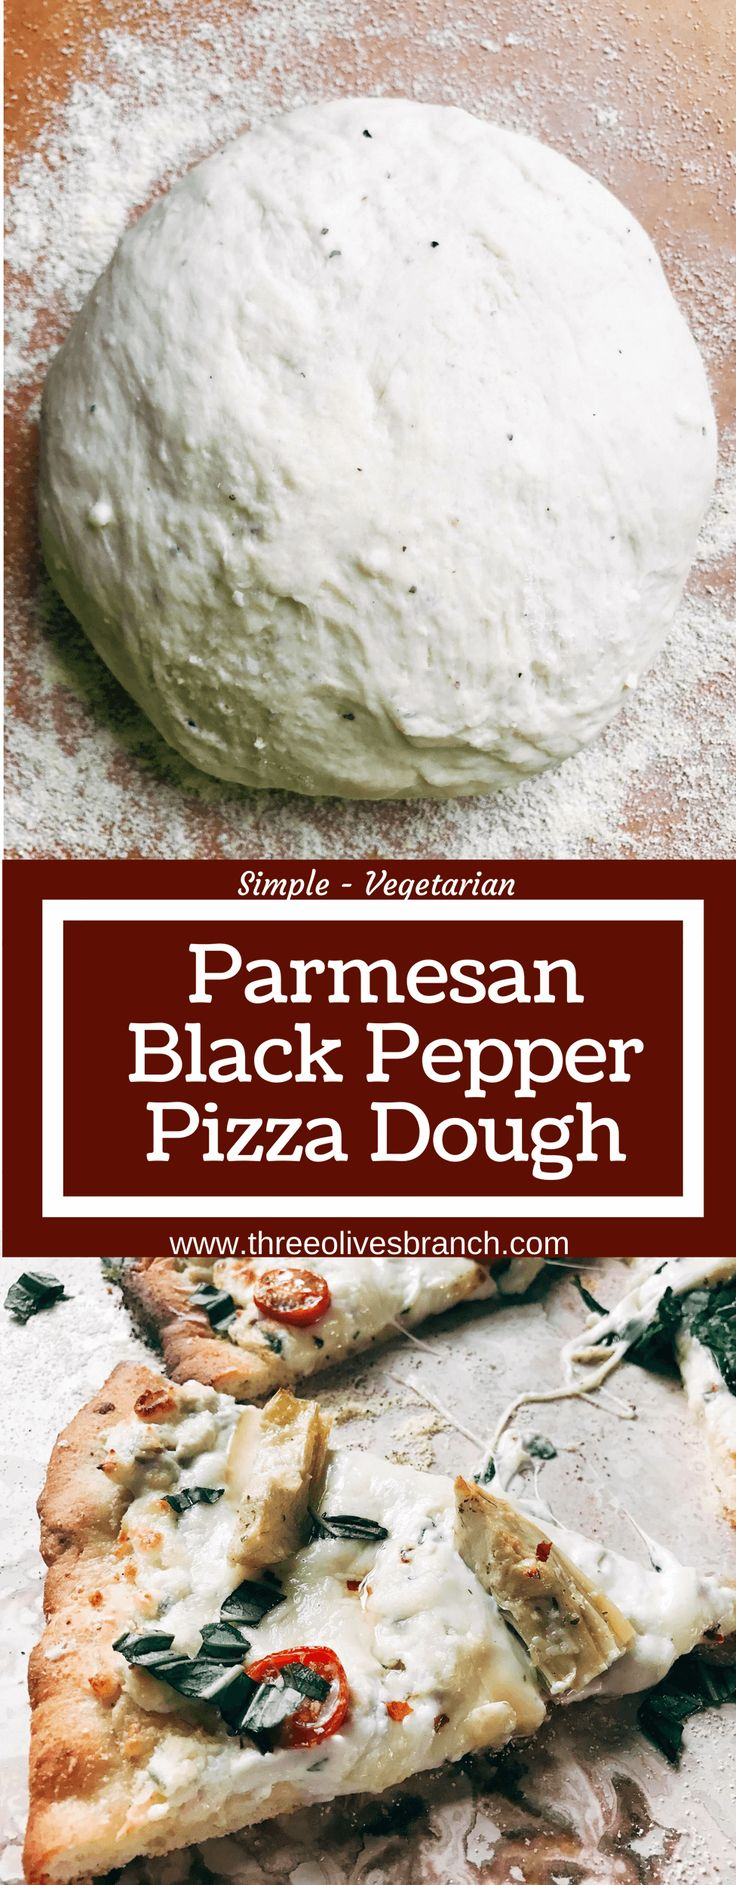 """Homemade pizza dough makes every pizza special! This fresh dough is simple and can be made in advance for a quick pizza night. Freezes well! Vegetarian, kid friendly, and delicious. Makes two 12"""" thin pizza crusts. Parmesan Black Pepper Pizza Dough   Three Olives Branch   www.threeolivesbranch.com"""